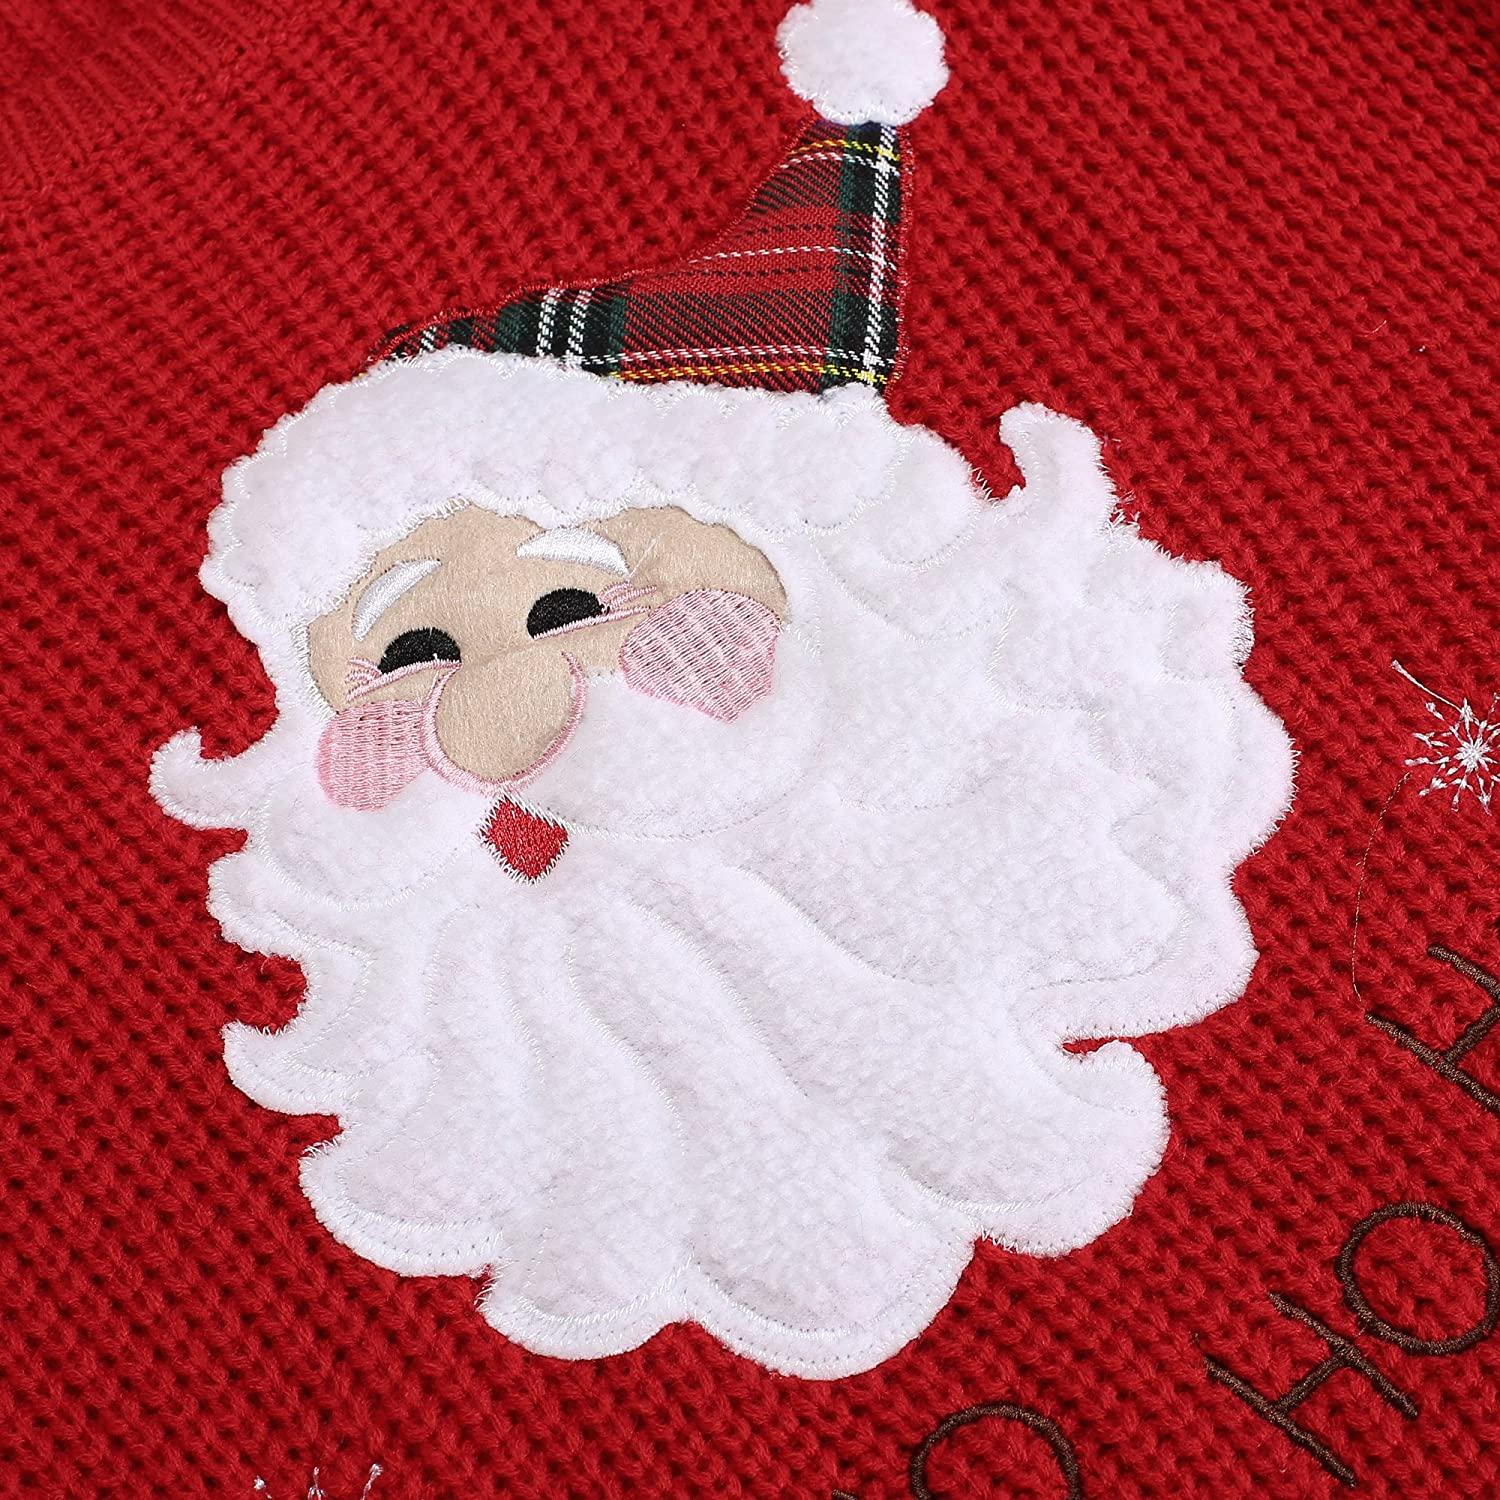 Eshion Girl Christmas Cute Santa Embroidered Knitted Pullover Sweater